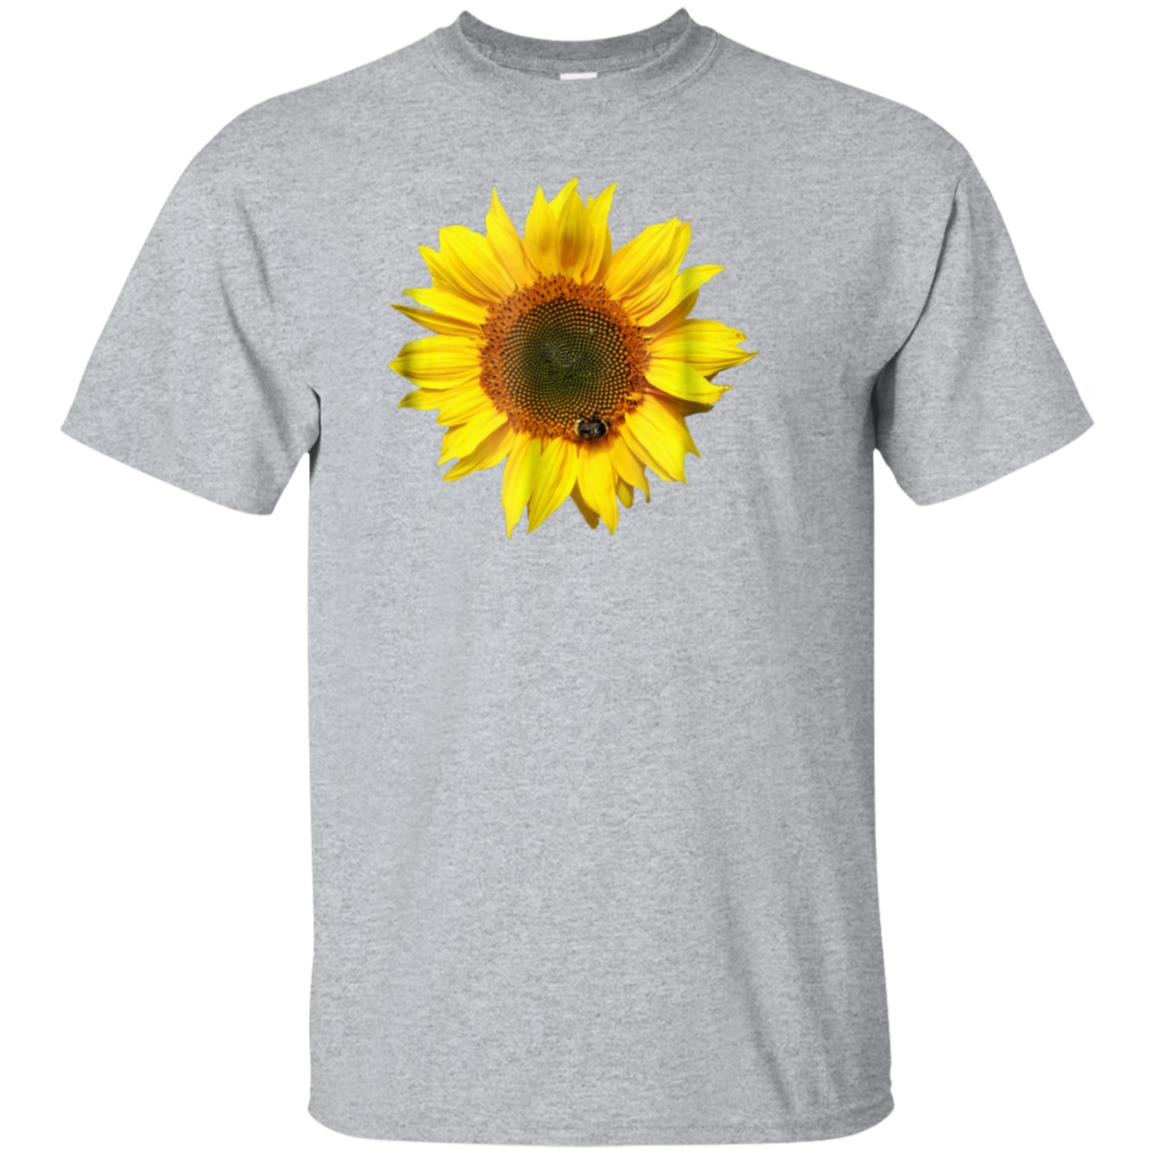 Flower Shirts Nice Sunflower with a Bee T-Shirt 99promocode